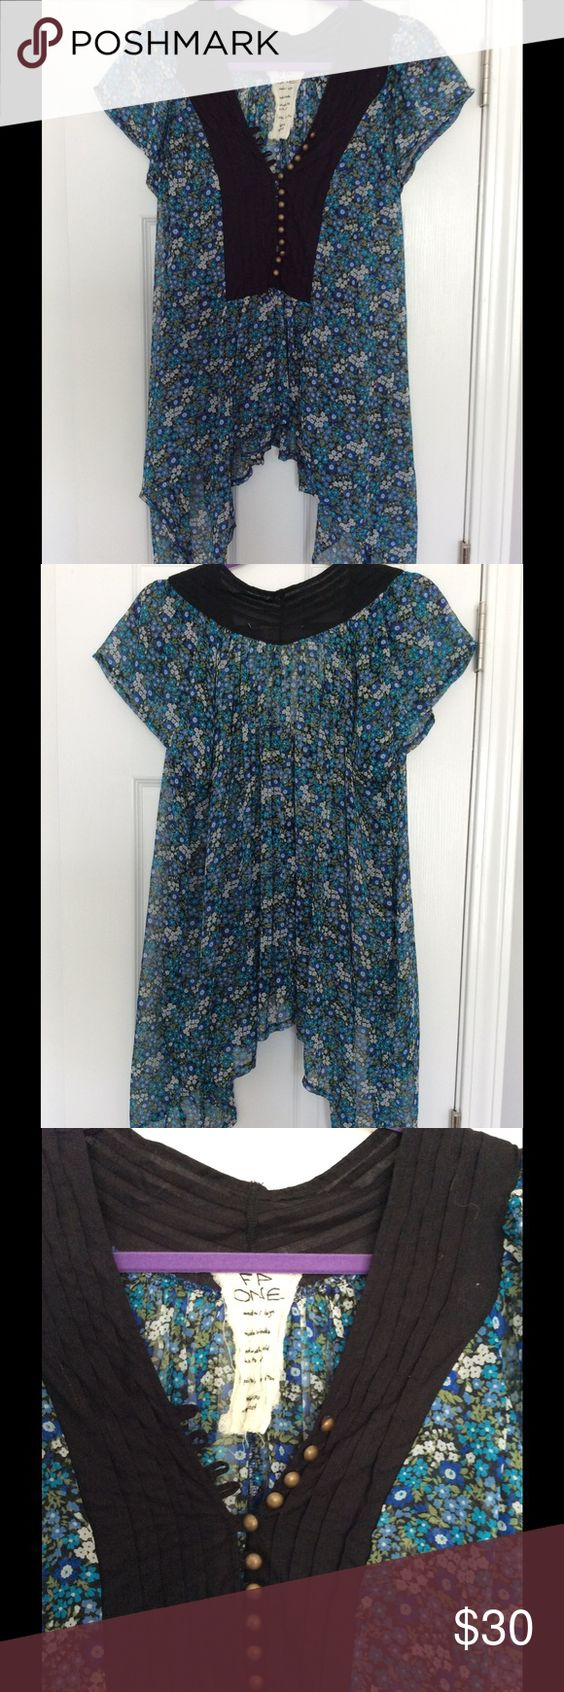 Free people top Pretty floral top from free people. Size medium/large but will fit XS-large. Drapes nicely.  Please keep in mind when submitting offers that poshmark takes 20%. This is also listed for less on my eBay account: photoflo10. Free People Tops Blouses